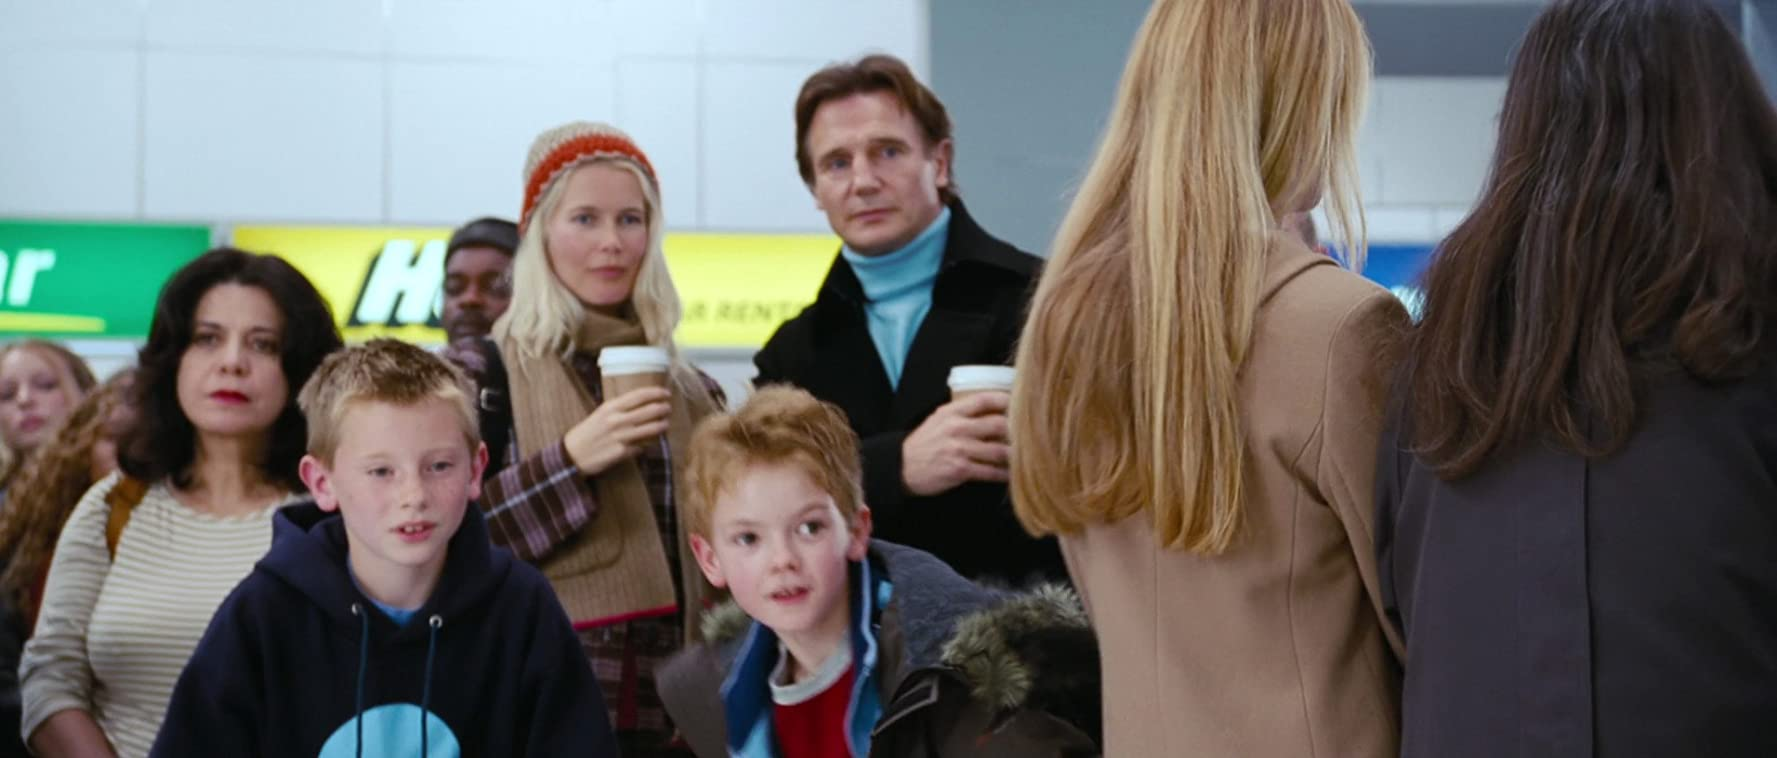 Liam Neeson, Claudia Schiffer, Patrick Delaney, and Thomas Brodie-Sangster in Love Actually (2003)